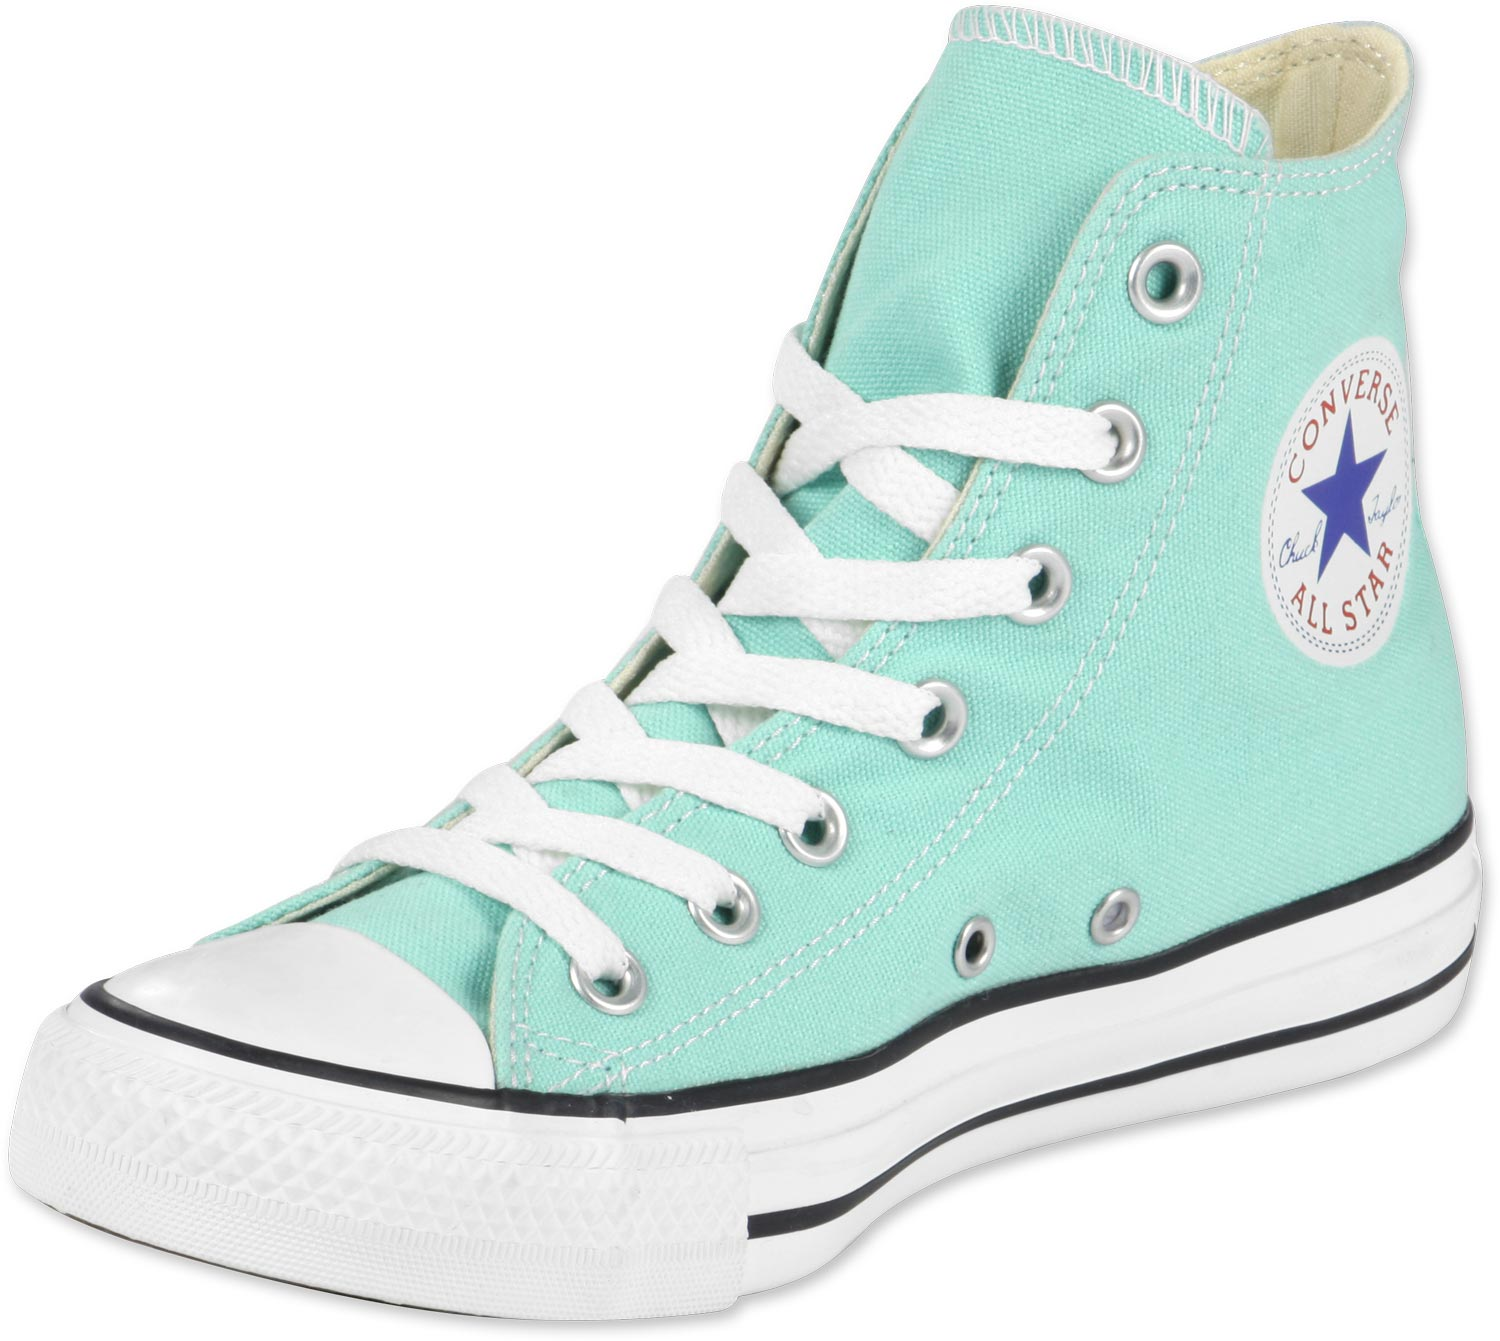 0d37798f37f1 Converse images converse ♥♥ HD wallpaper and background photos ...